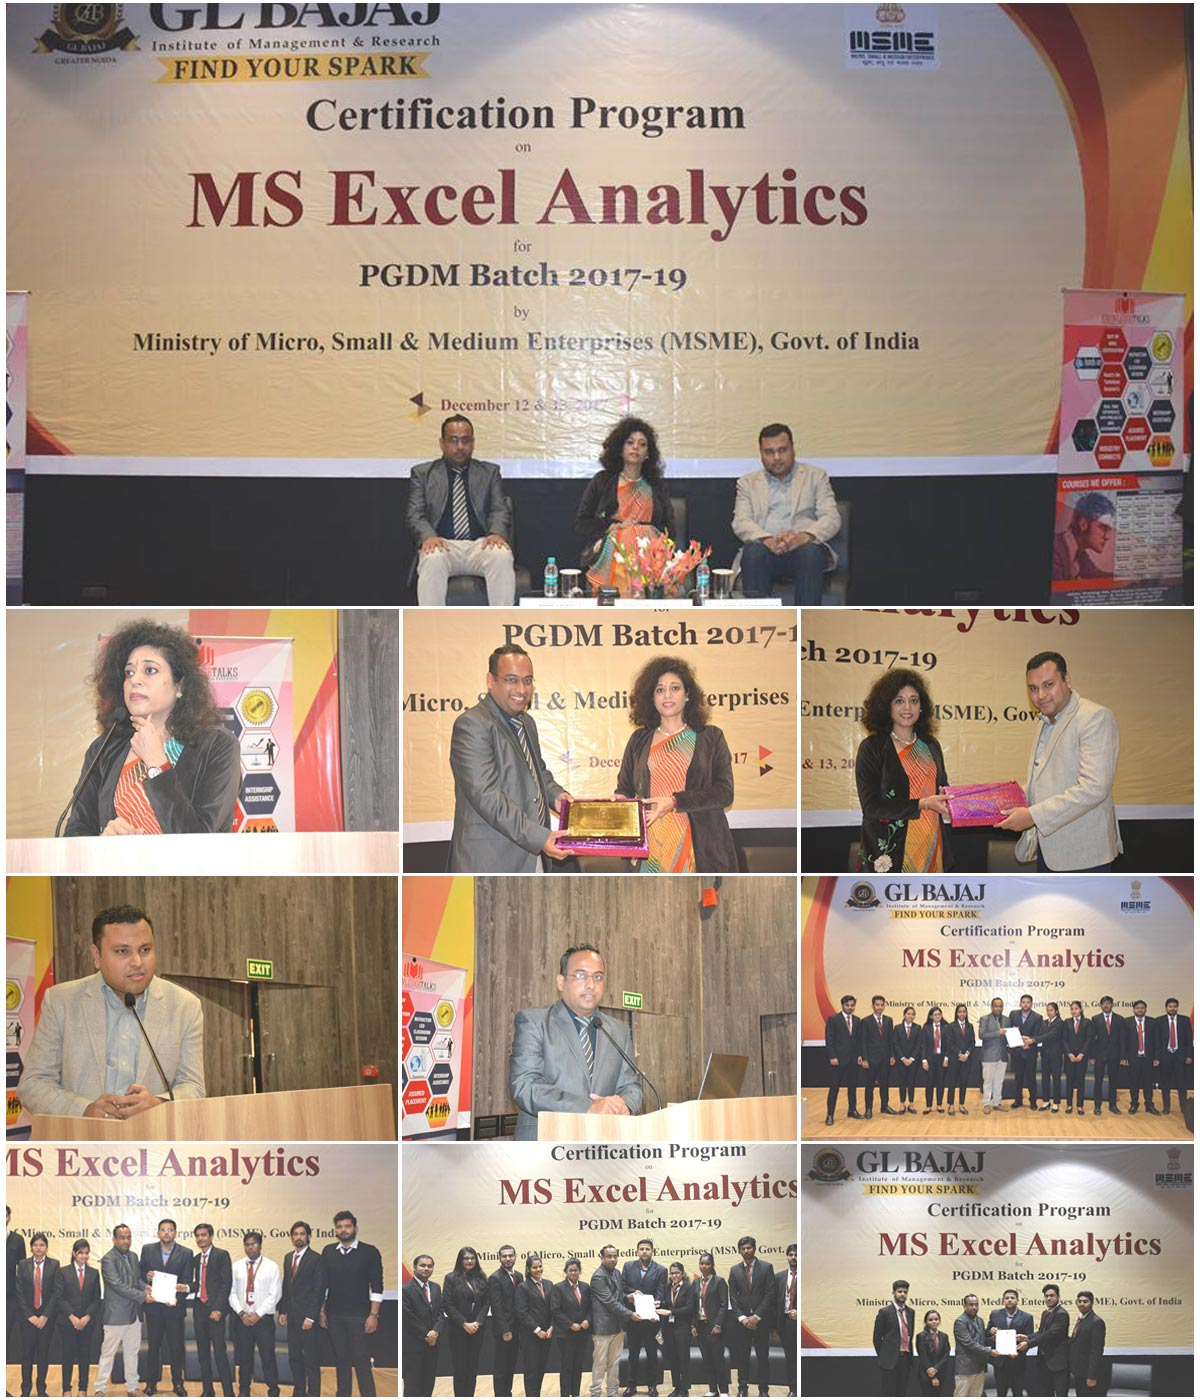 Gl bajaj institute of management research events latest news events 1betcityfo Images